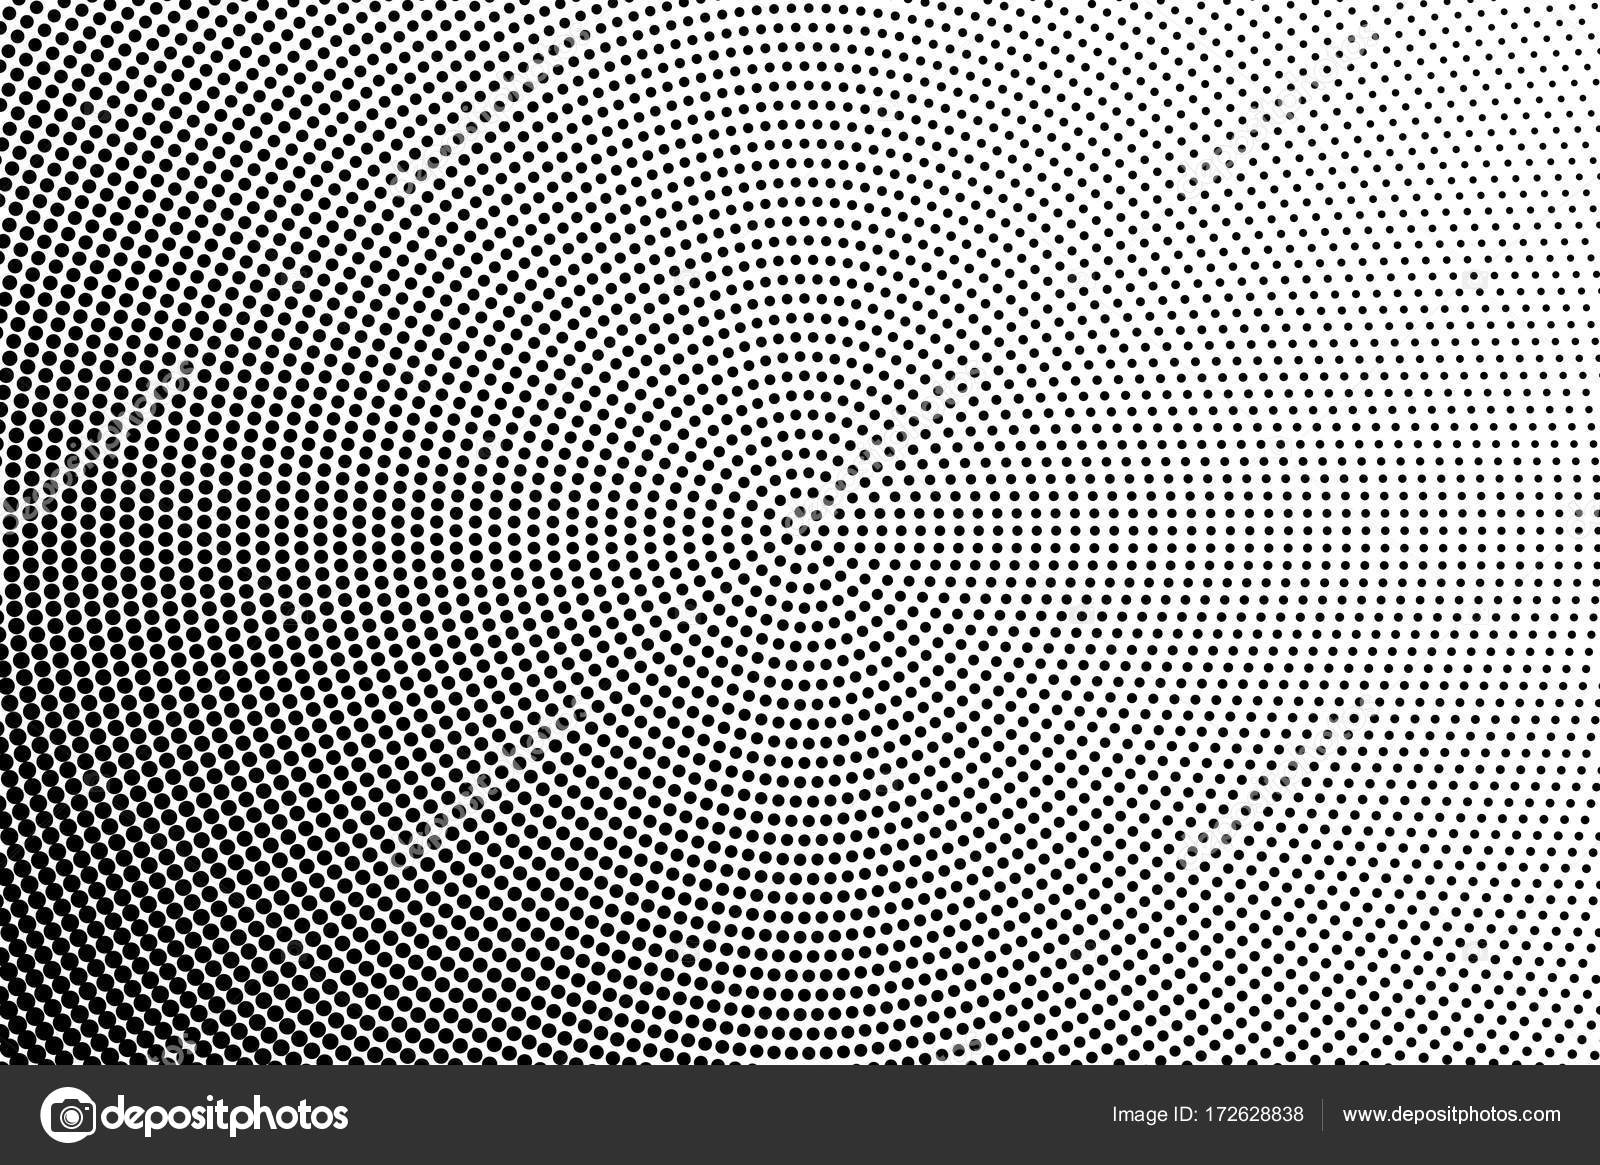 abstract futuristic halftone pattern comic background dotted